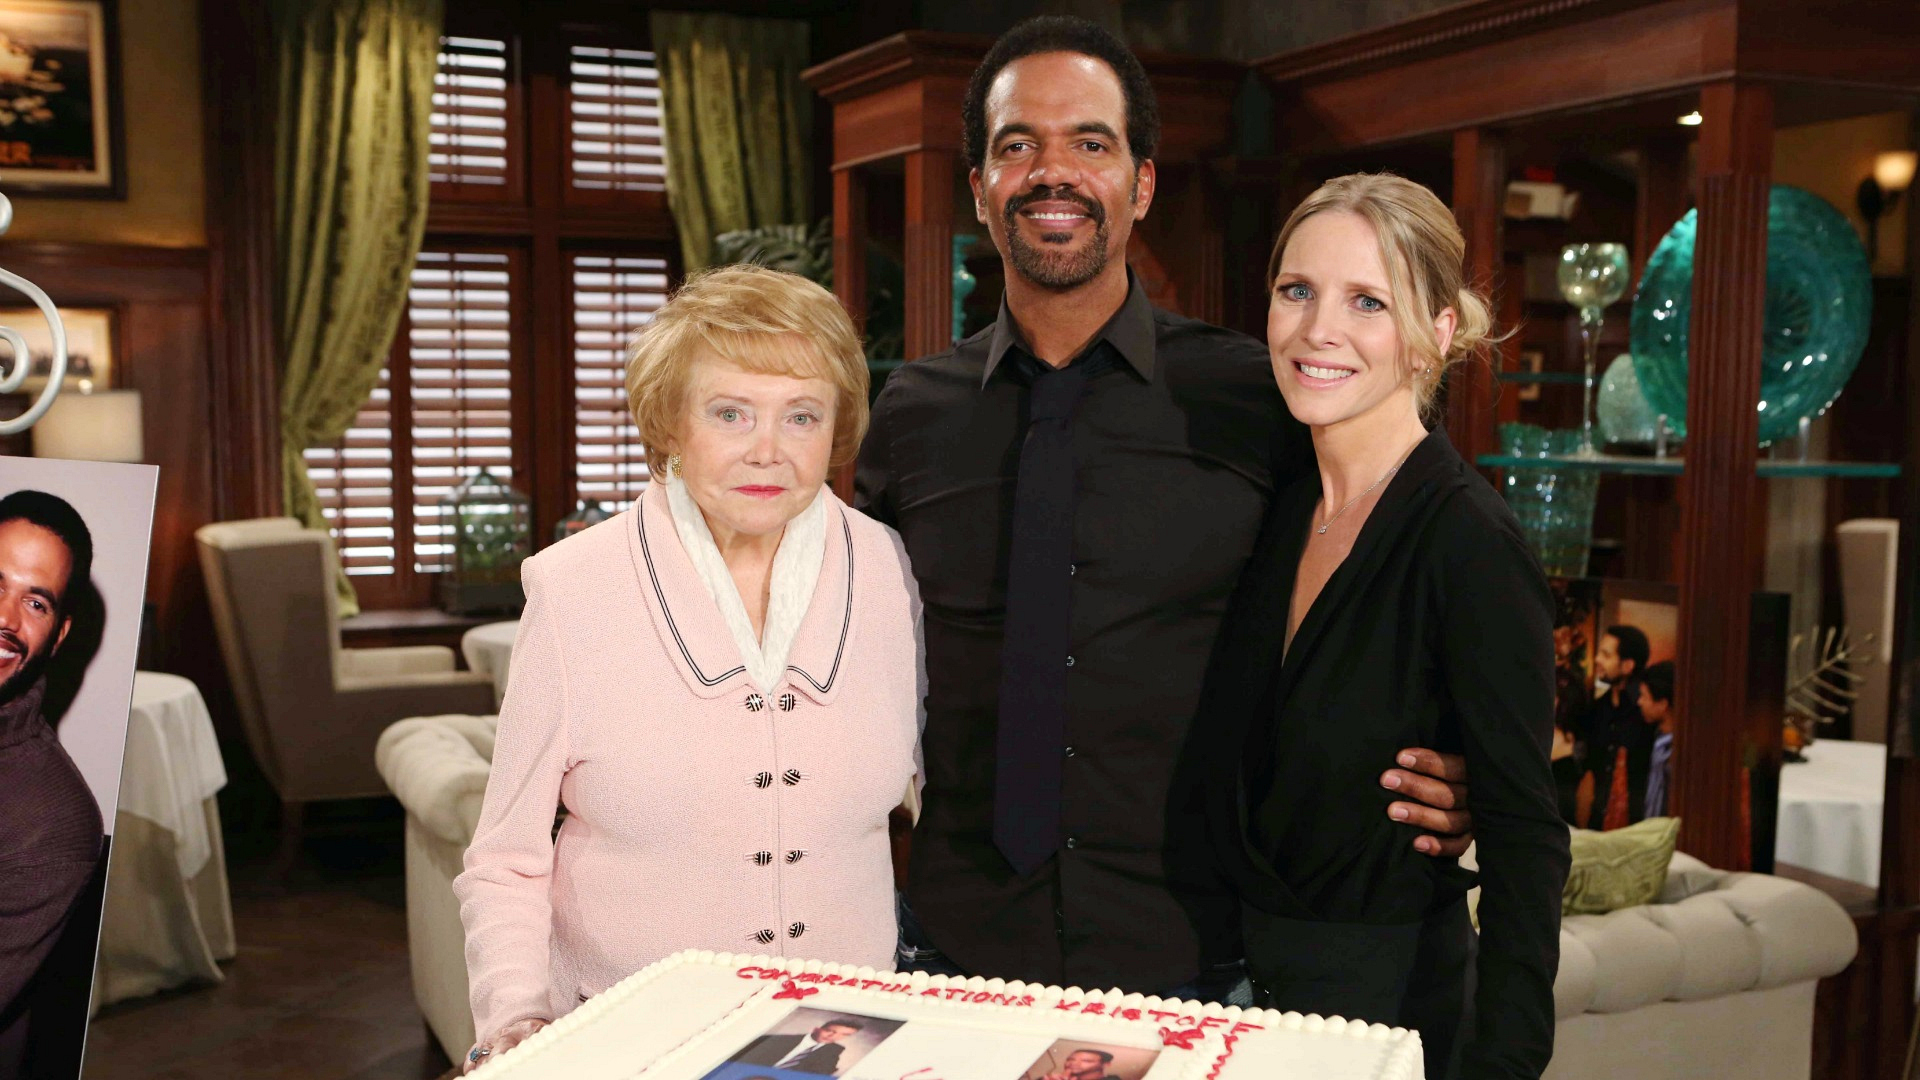 Kristoff St. John poses with Lee Phillip Bell and Lauralee Bell for his 25th anniversary party.